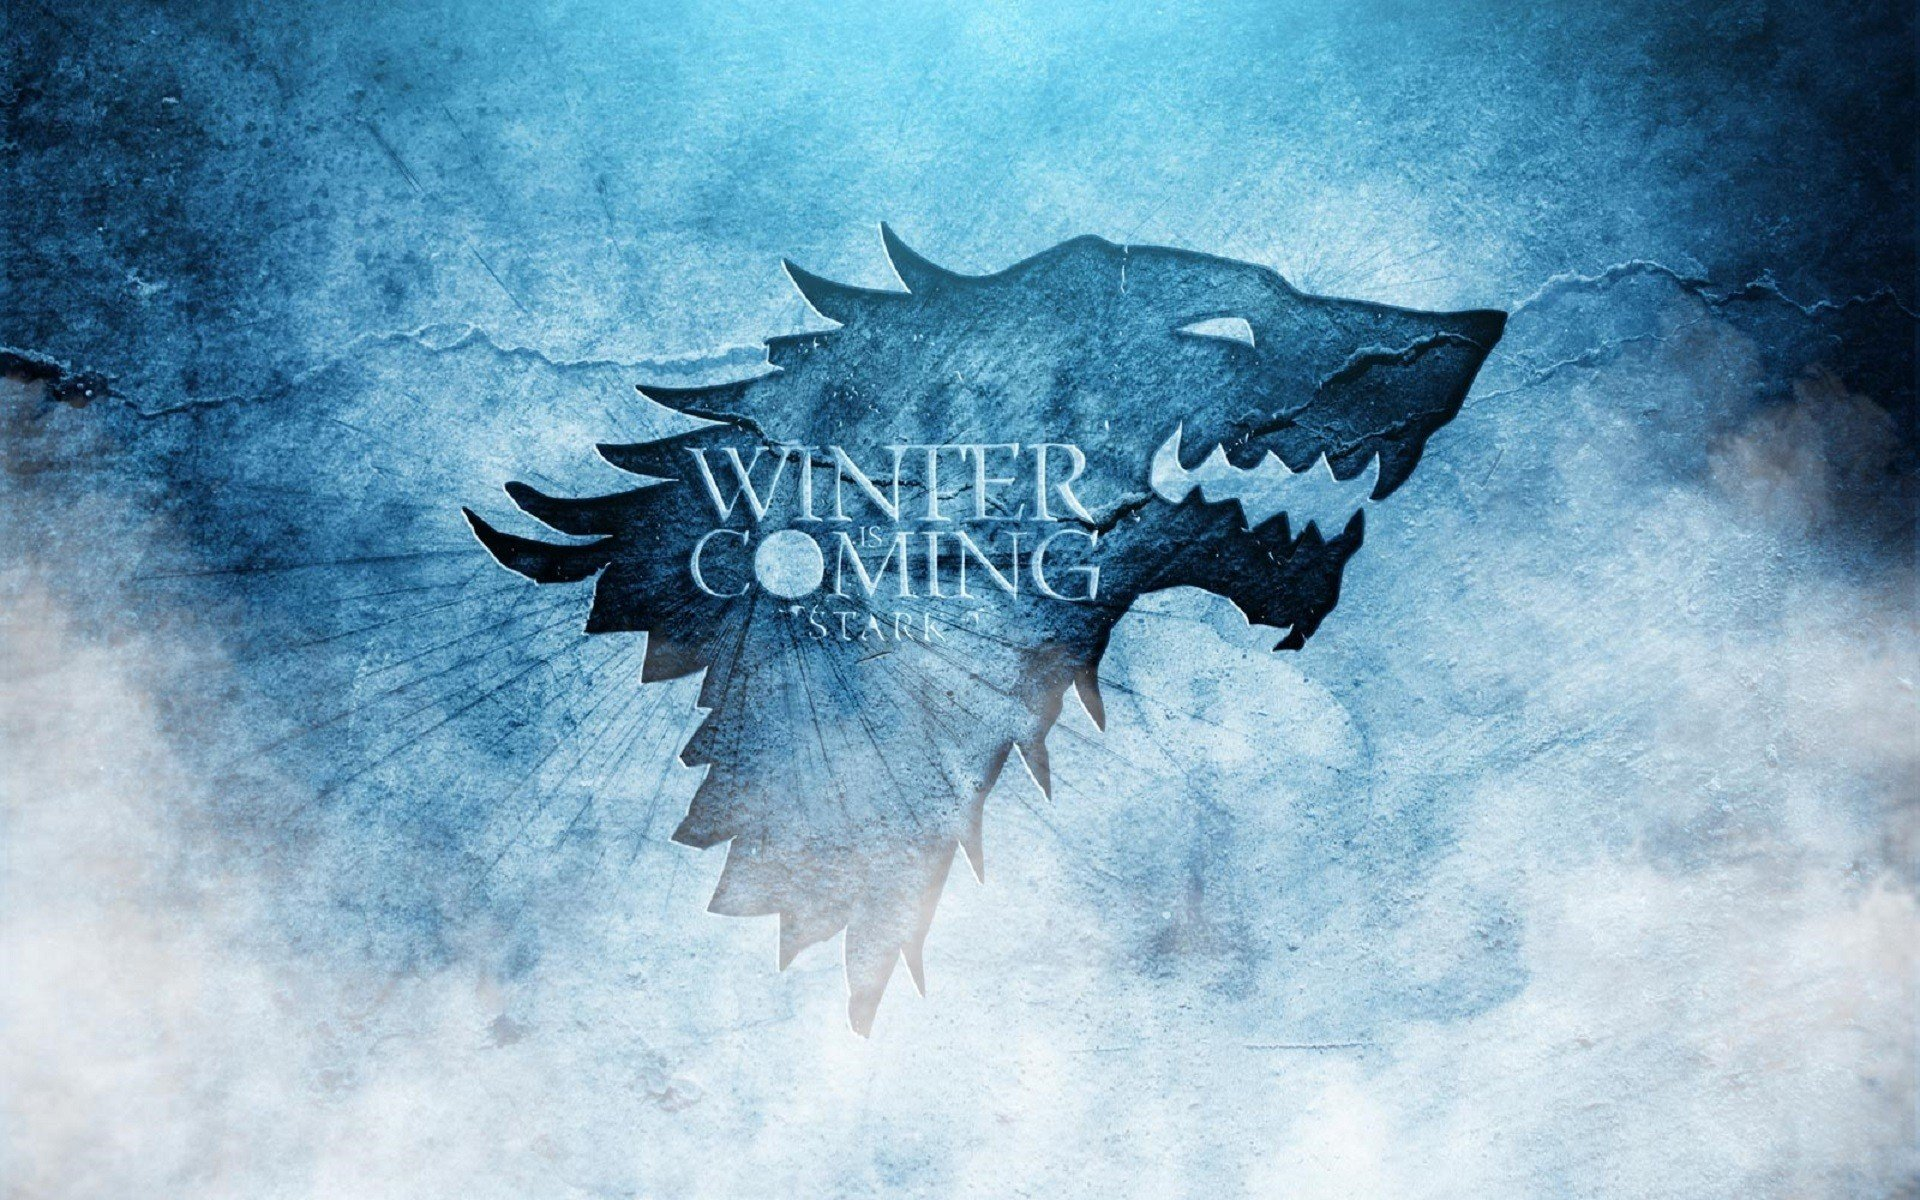 Game of Thrones Winter is Coming TV shows wallpaper 1920x1200 1920x1200